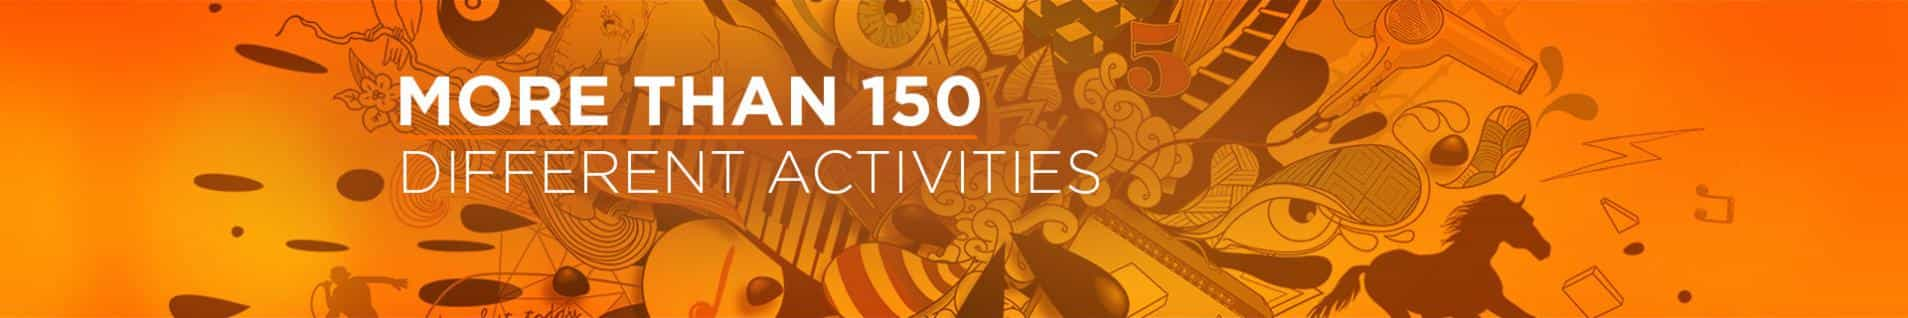 More than 150 different activities